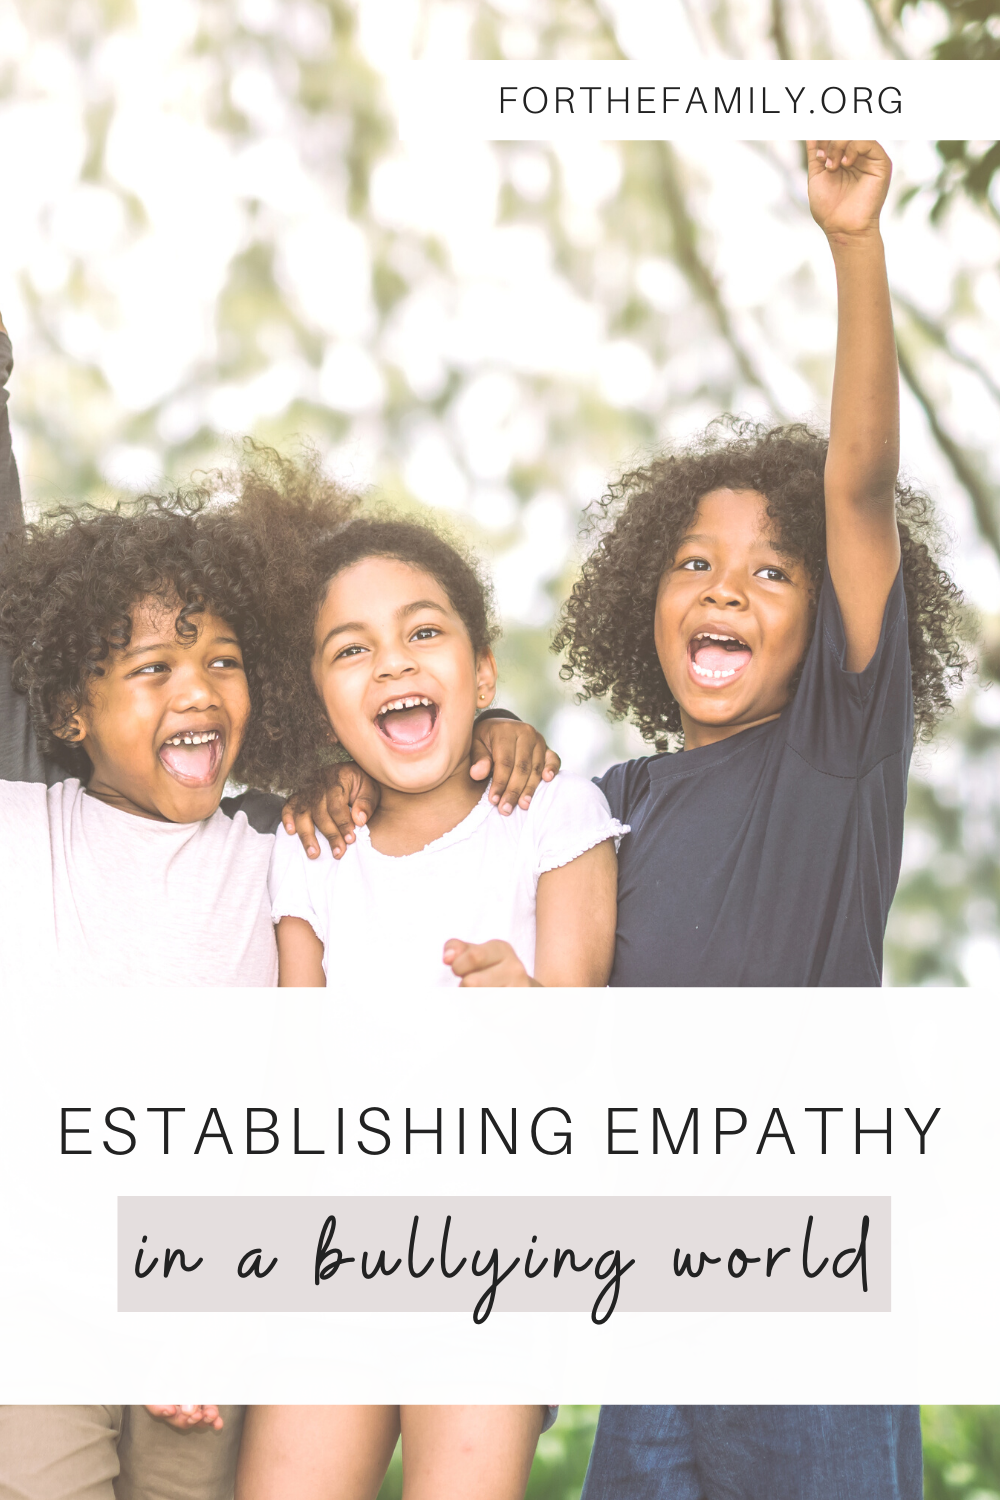 Establishing empathy in a bullying world requires keeping our hearts tender to the pain of others and seeing someone else as an image-bearer of God. So how do we teach that to our children?